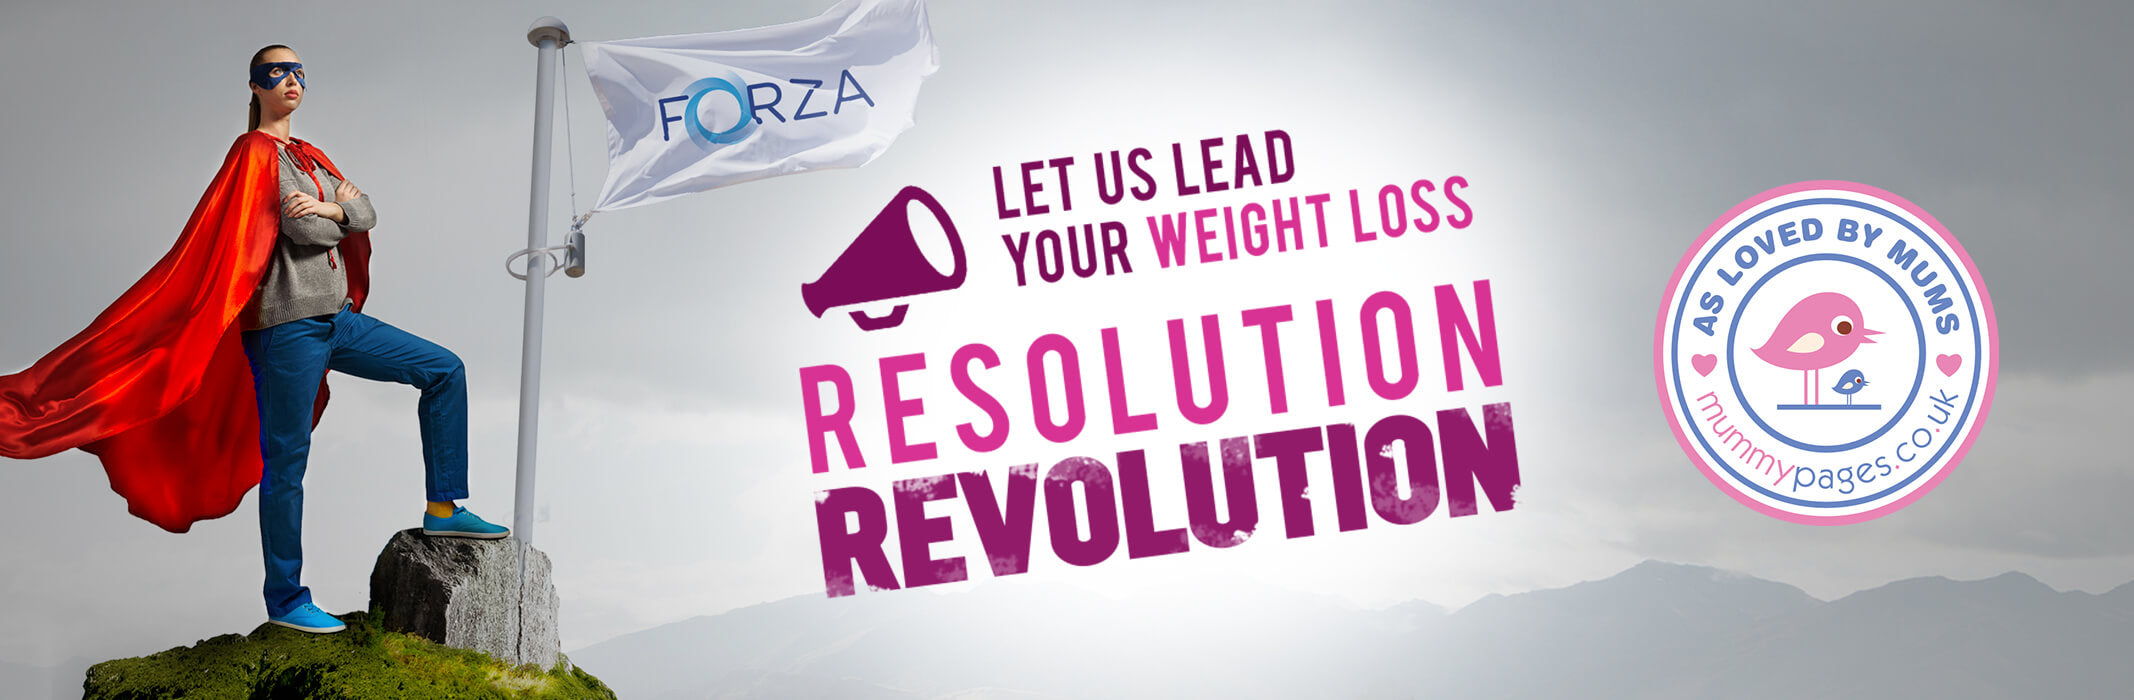 FORZA Weight Loss Resolution Revolution